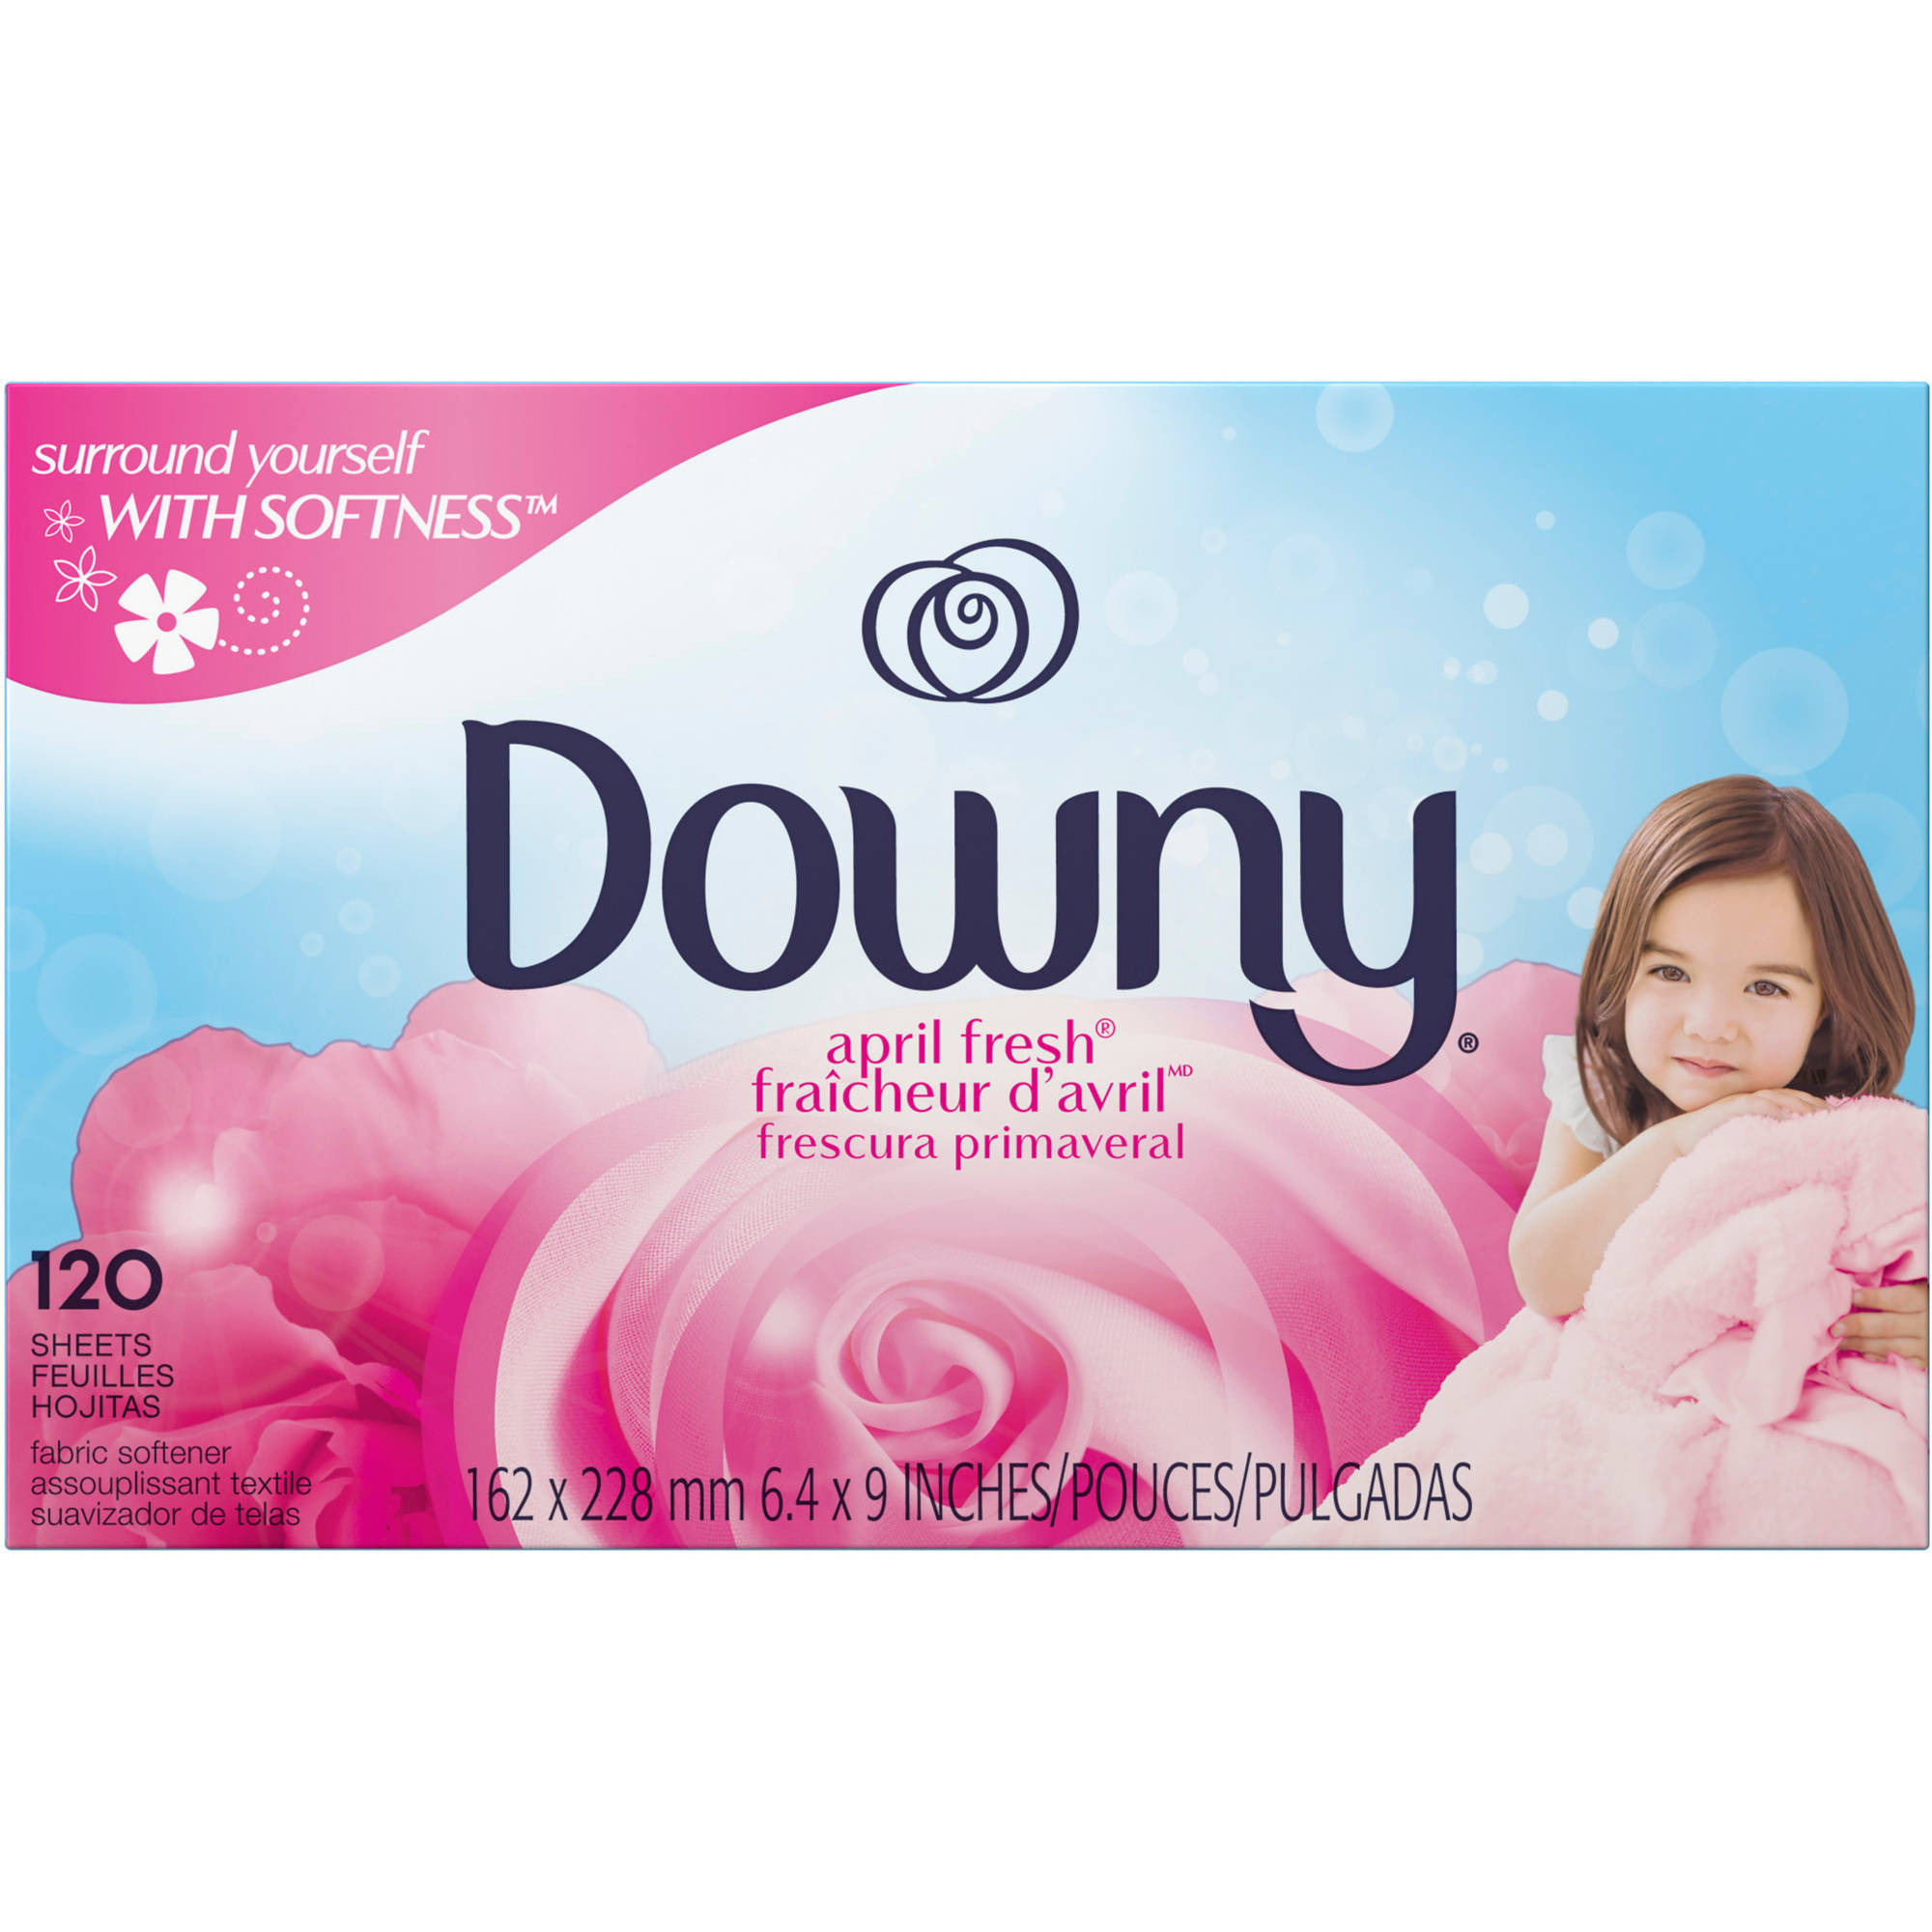 Image result for box of dryer sheets